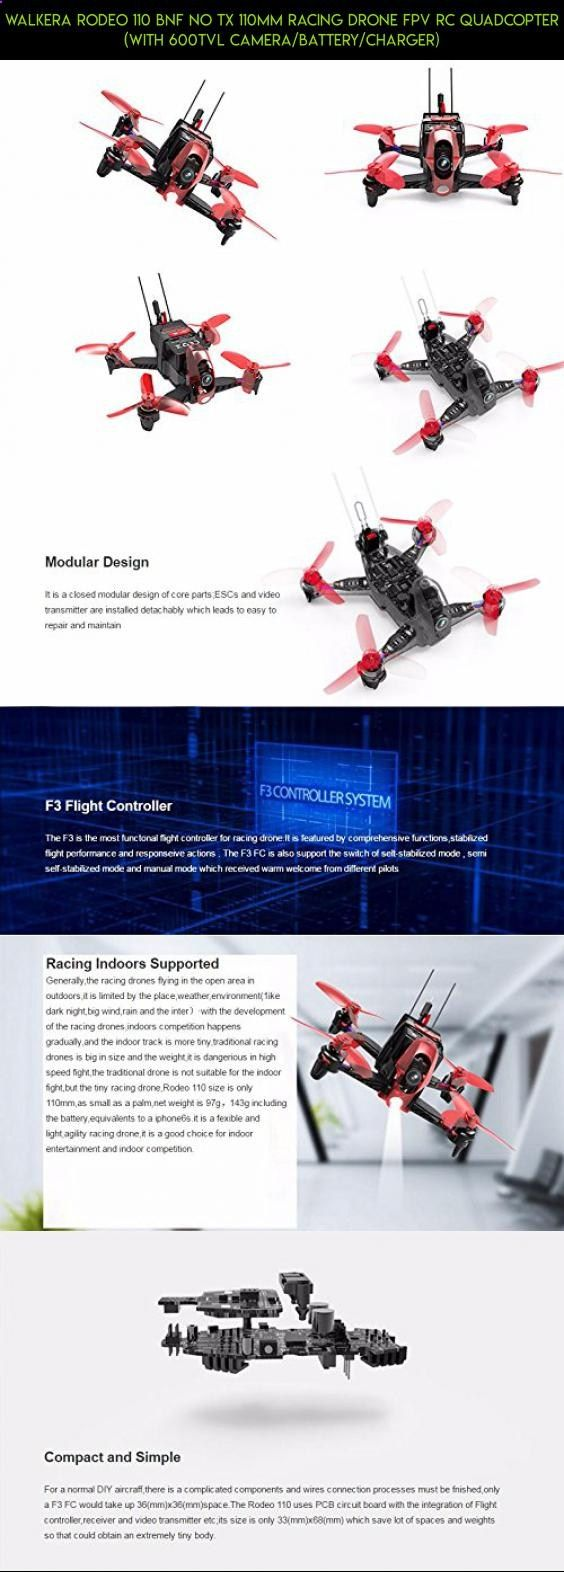 Walkera Rodeo 110 BNF No TX 110mm Racing Drone FPV RC Quadcopter (With 600TVL Camera/Battery/Charger) #drone #kit #walkera #racing #110 #plans #camera #fpv #tech #shopping #products #technology #gadgets #parts